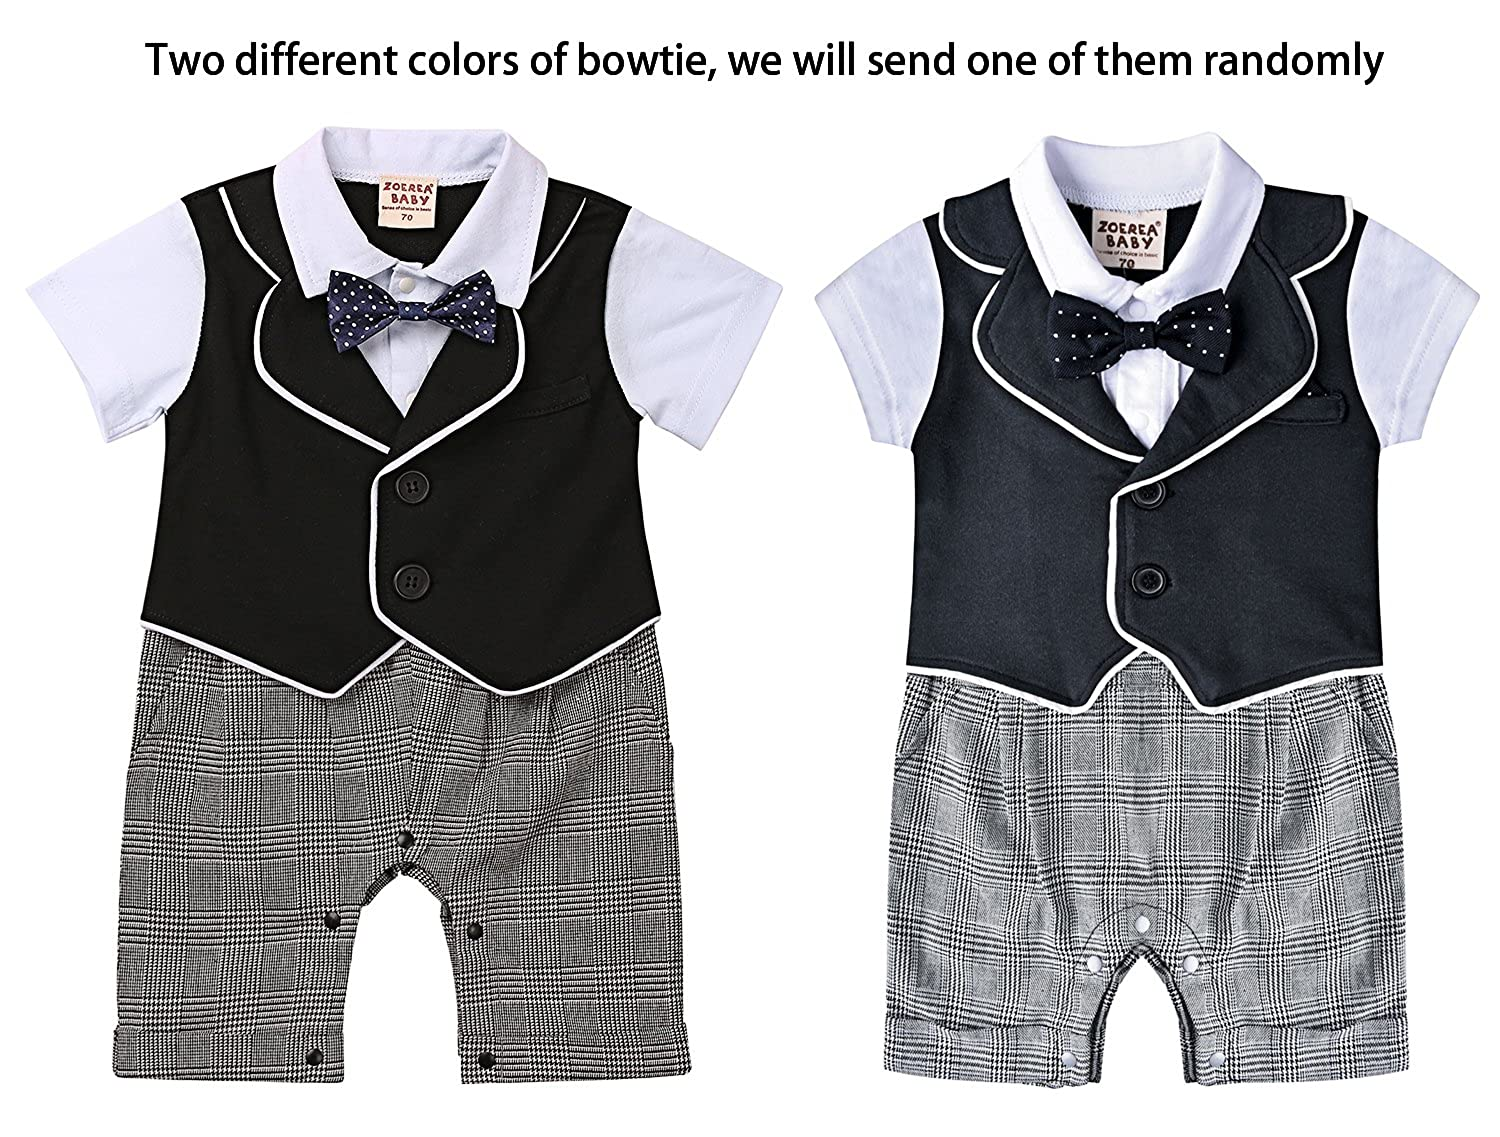 b4832a5f9 ZOEREA Baby Boys Rompers One Piece Short Sleeve Bowtie Christening ...